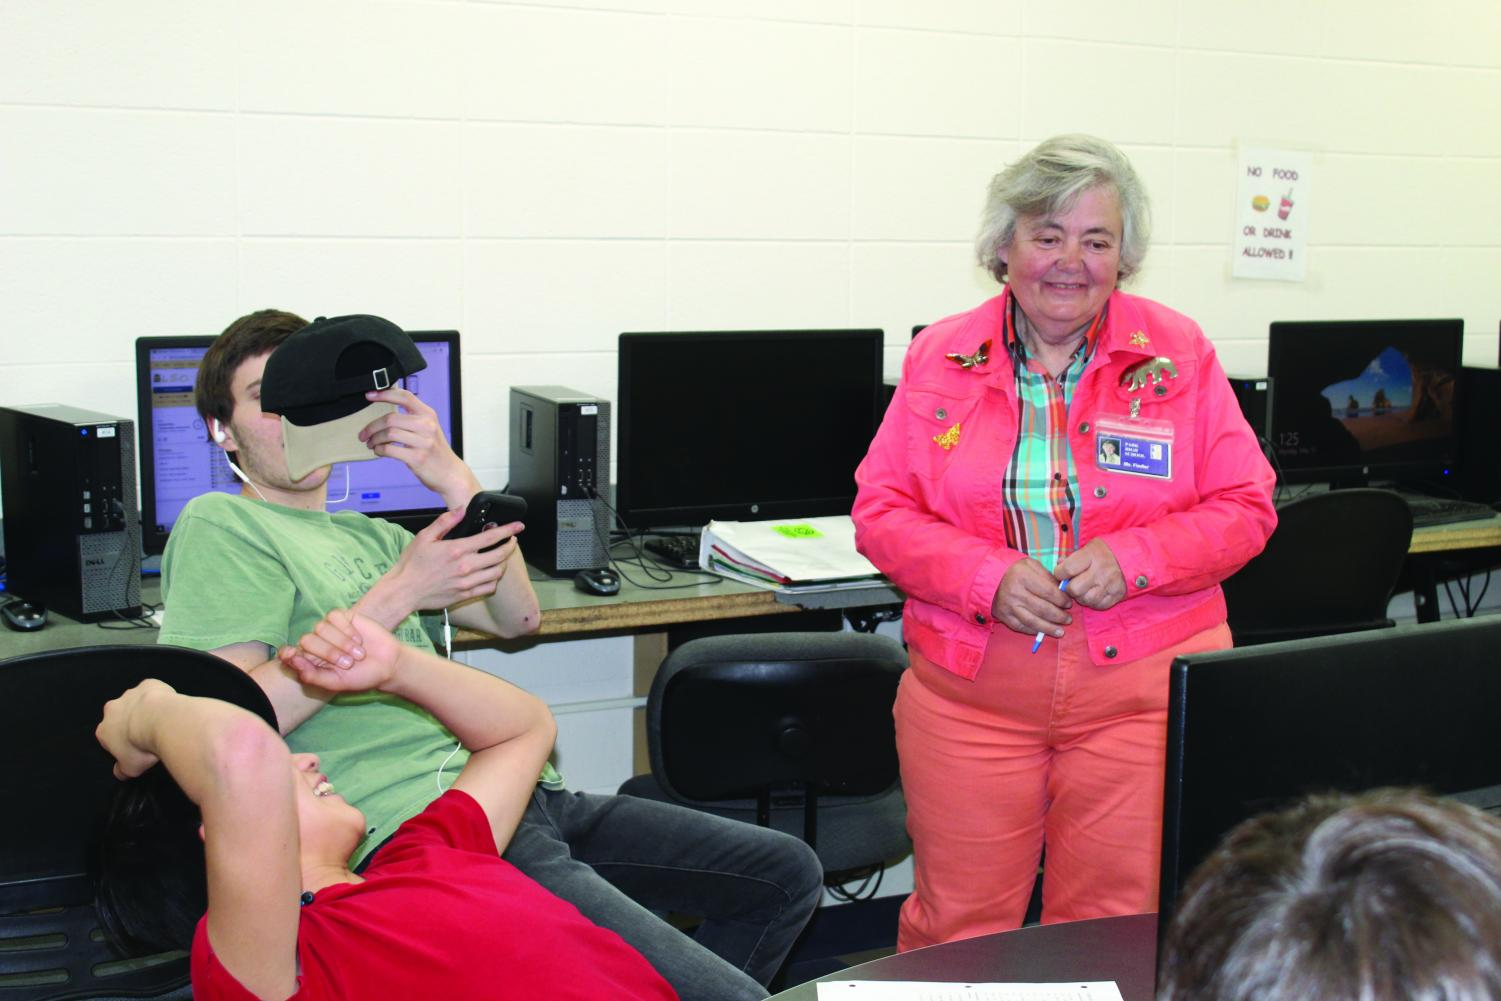 Ms. Fiedler talks with students in the computer lab while substituting recently.